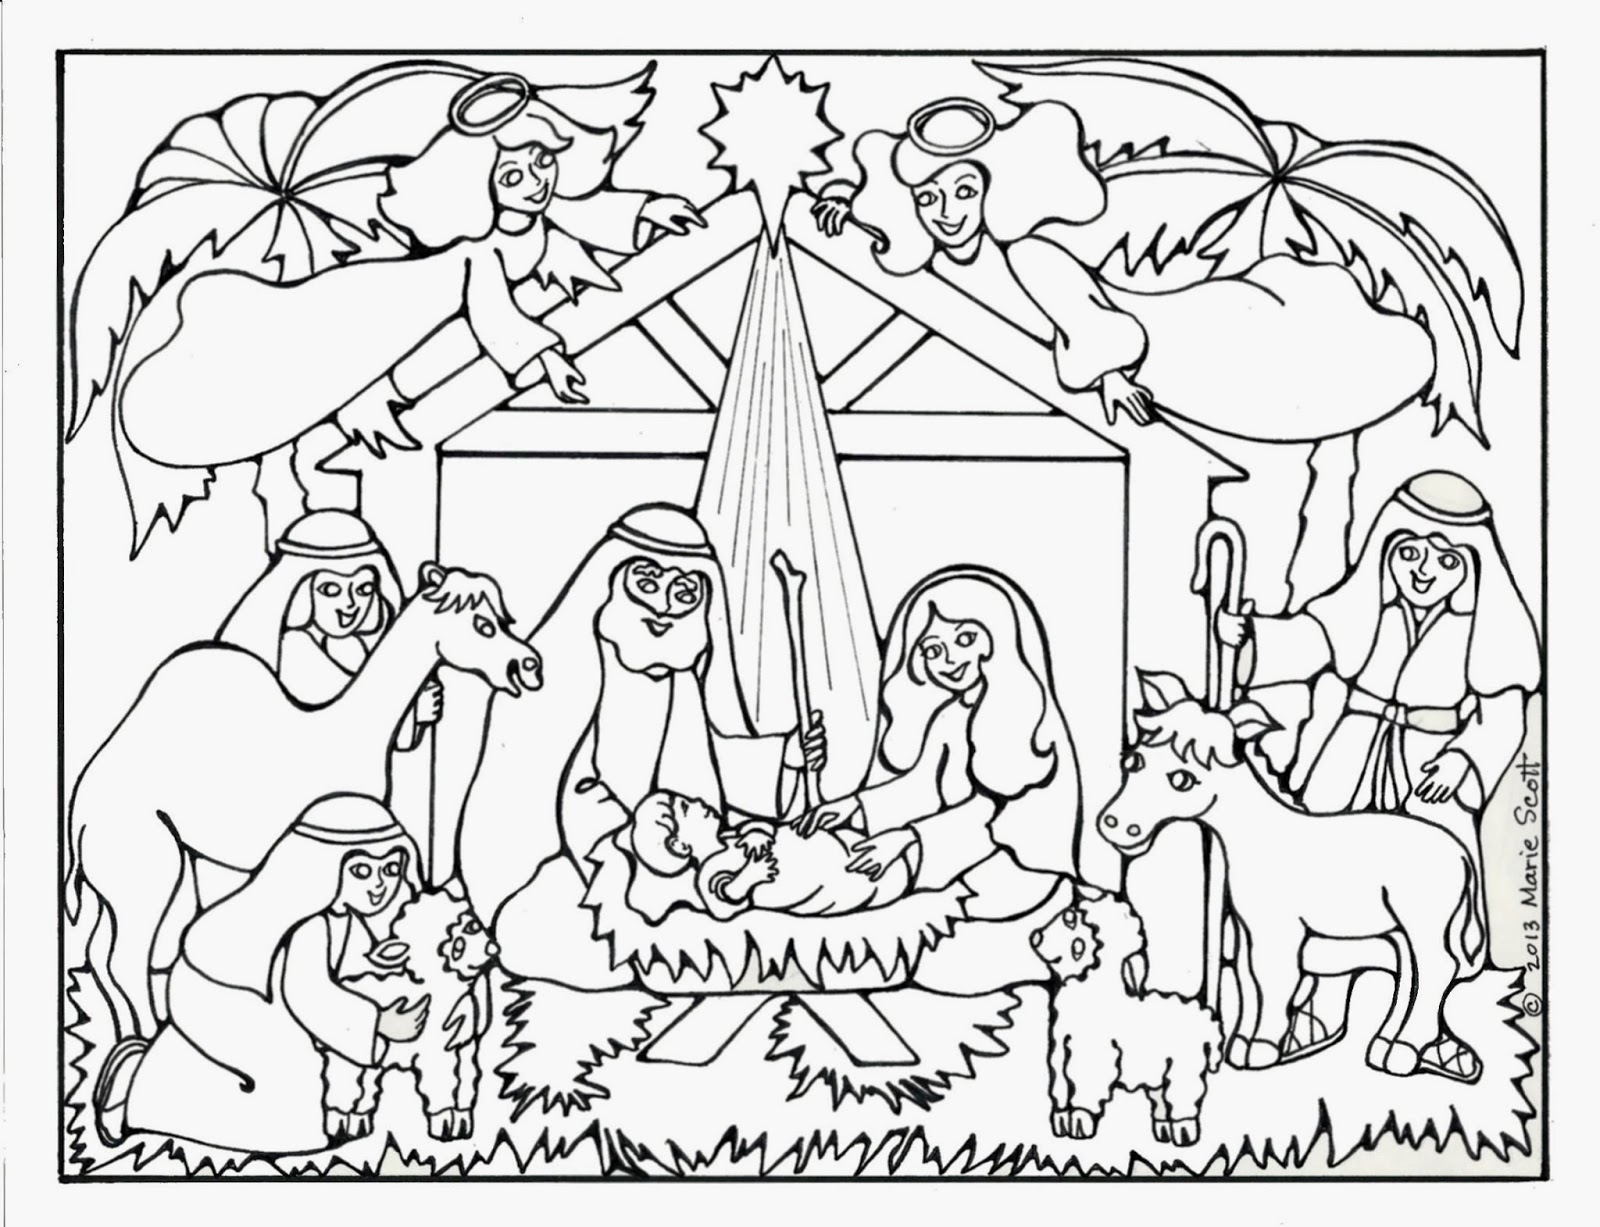 nativity scene coloring book pages - photo#31